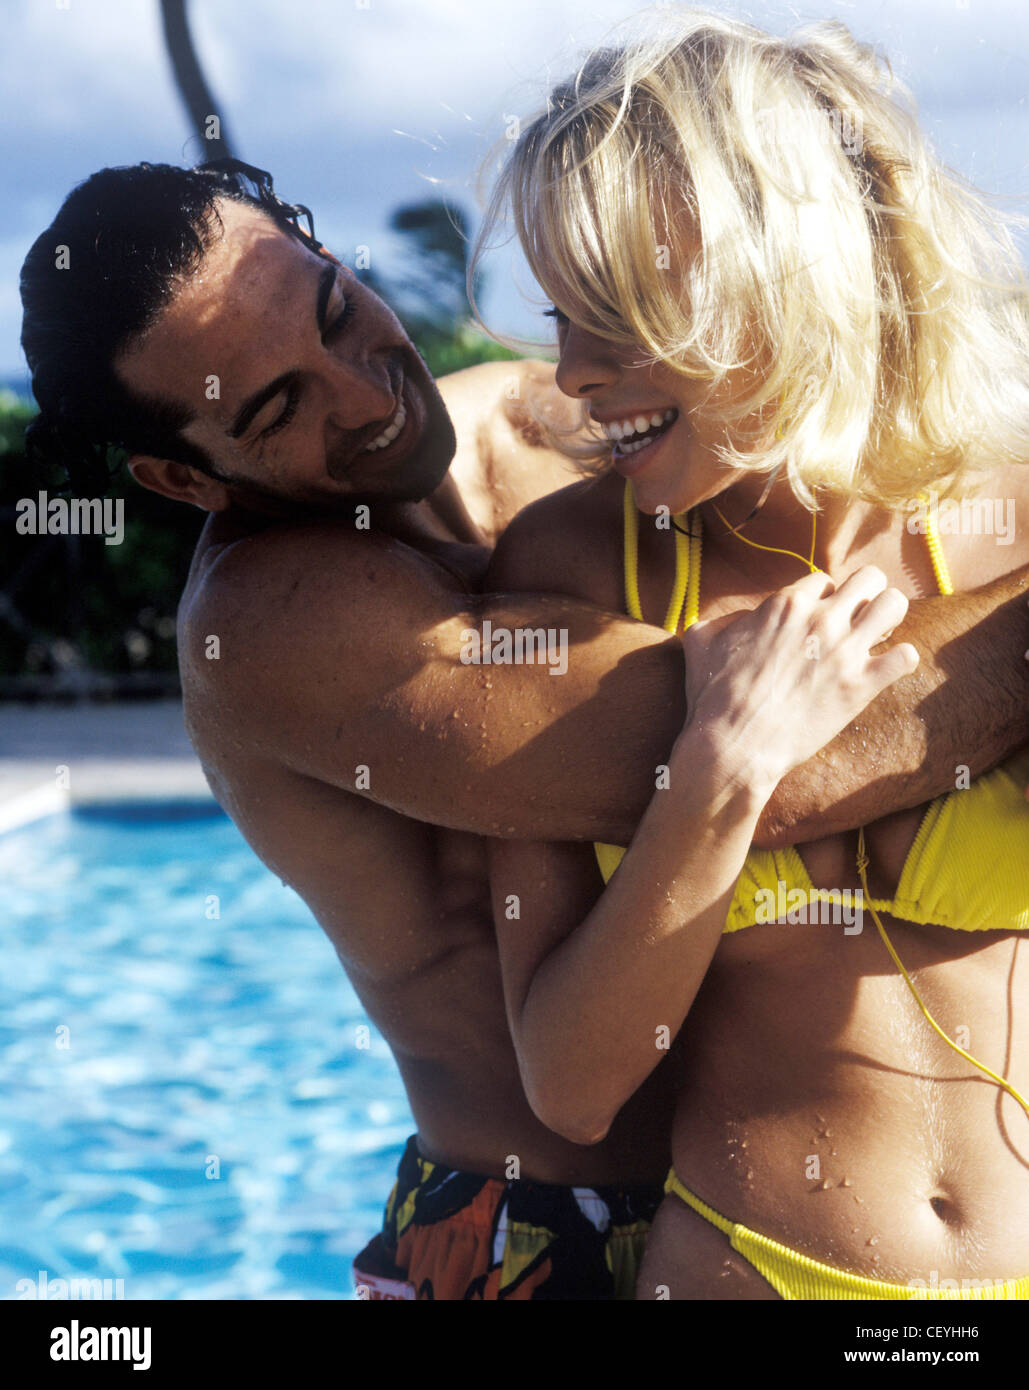 female blonde hair, wearing yellow bikini wrestling male wet